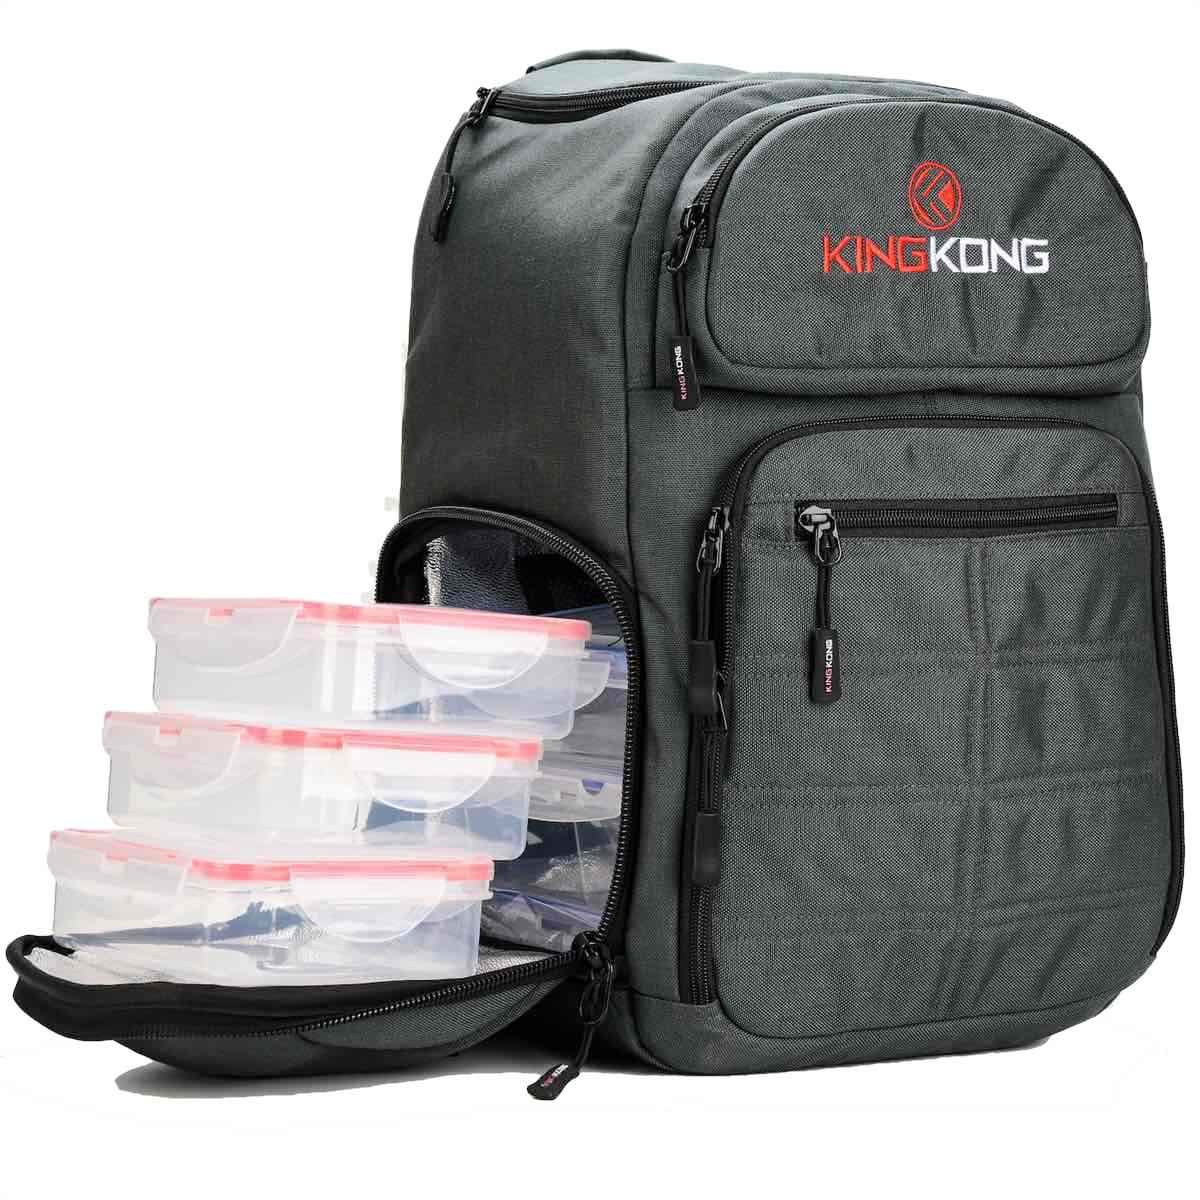 King Kong Fuel Meal Prep Backpack - Insulated Thermal Polyester Lunch Bag, Military Spec Nylon with Two Reusable Ice Packs - Charcoal